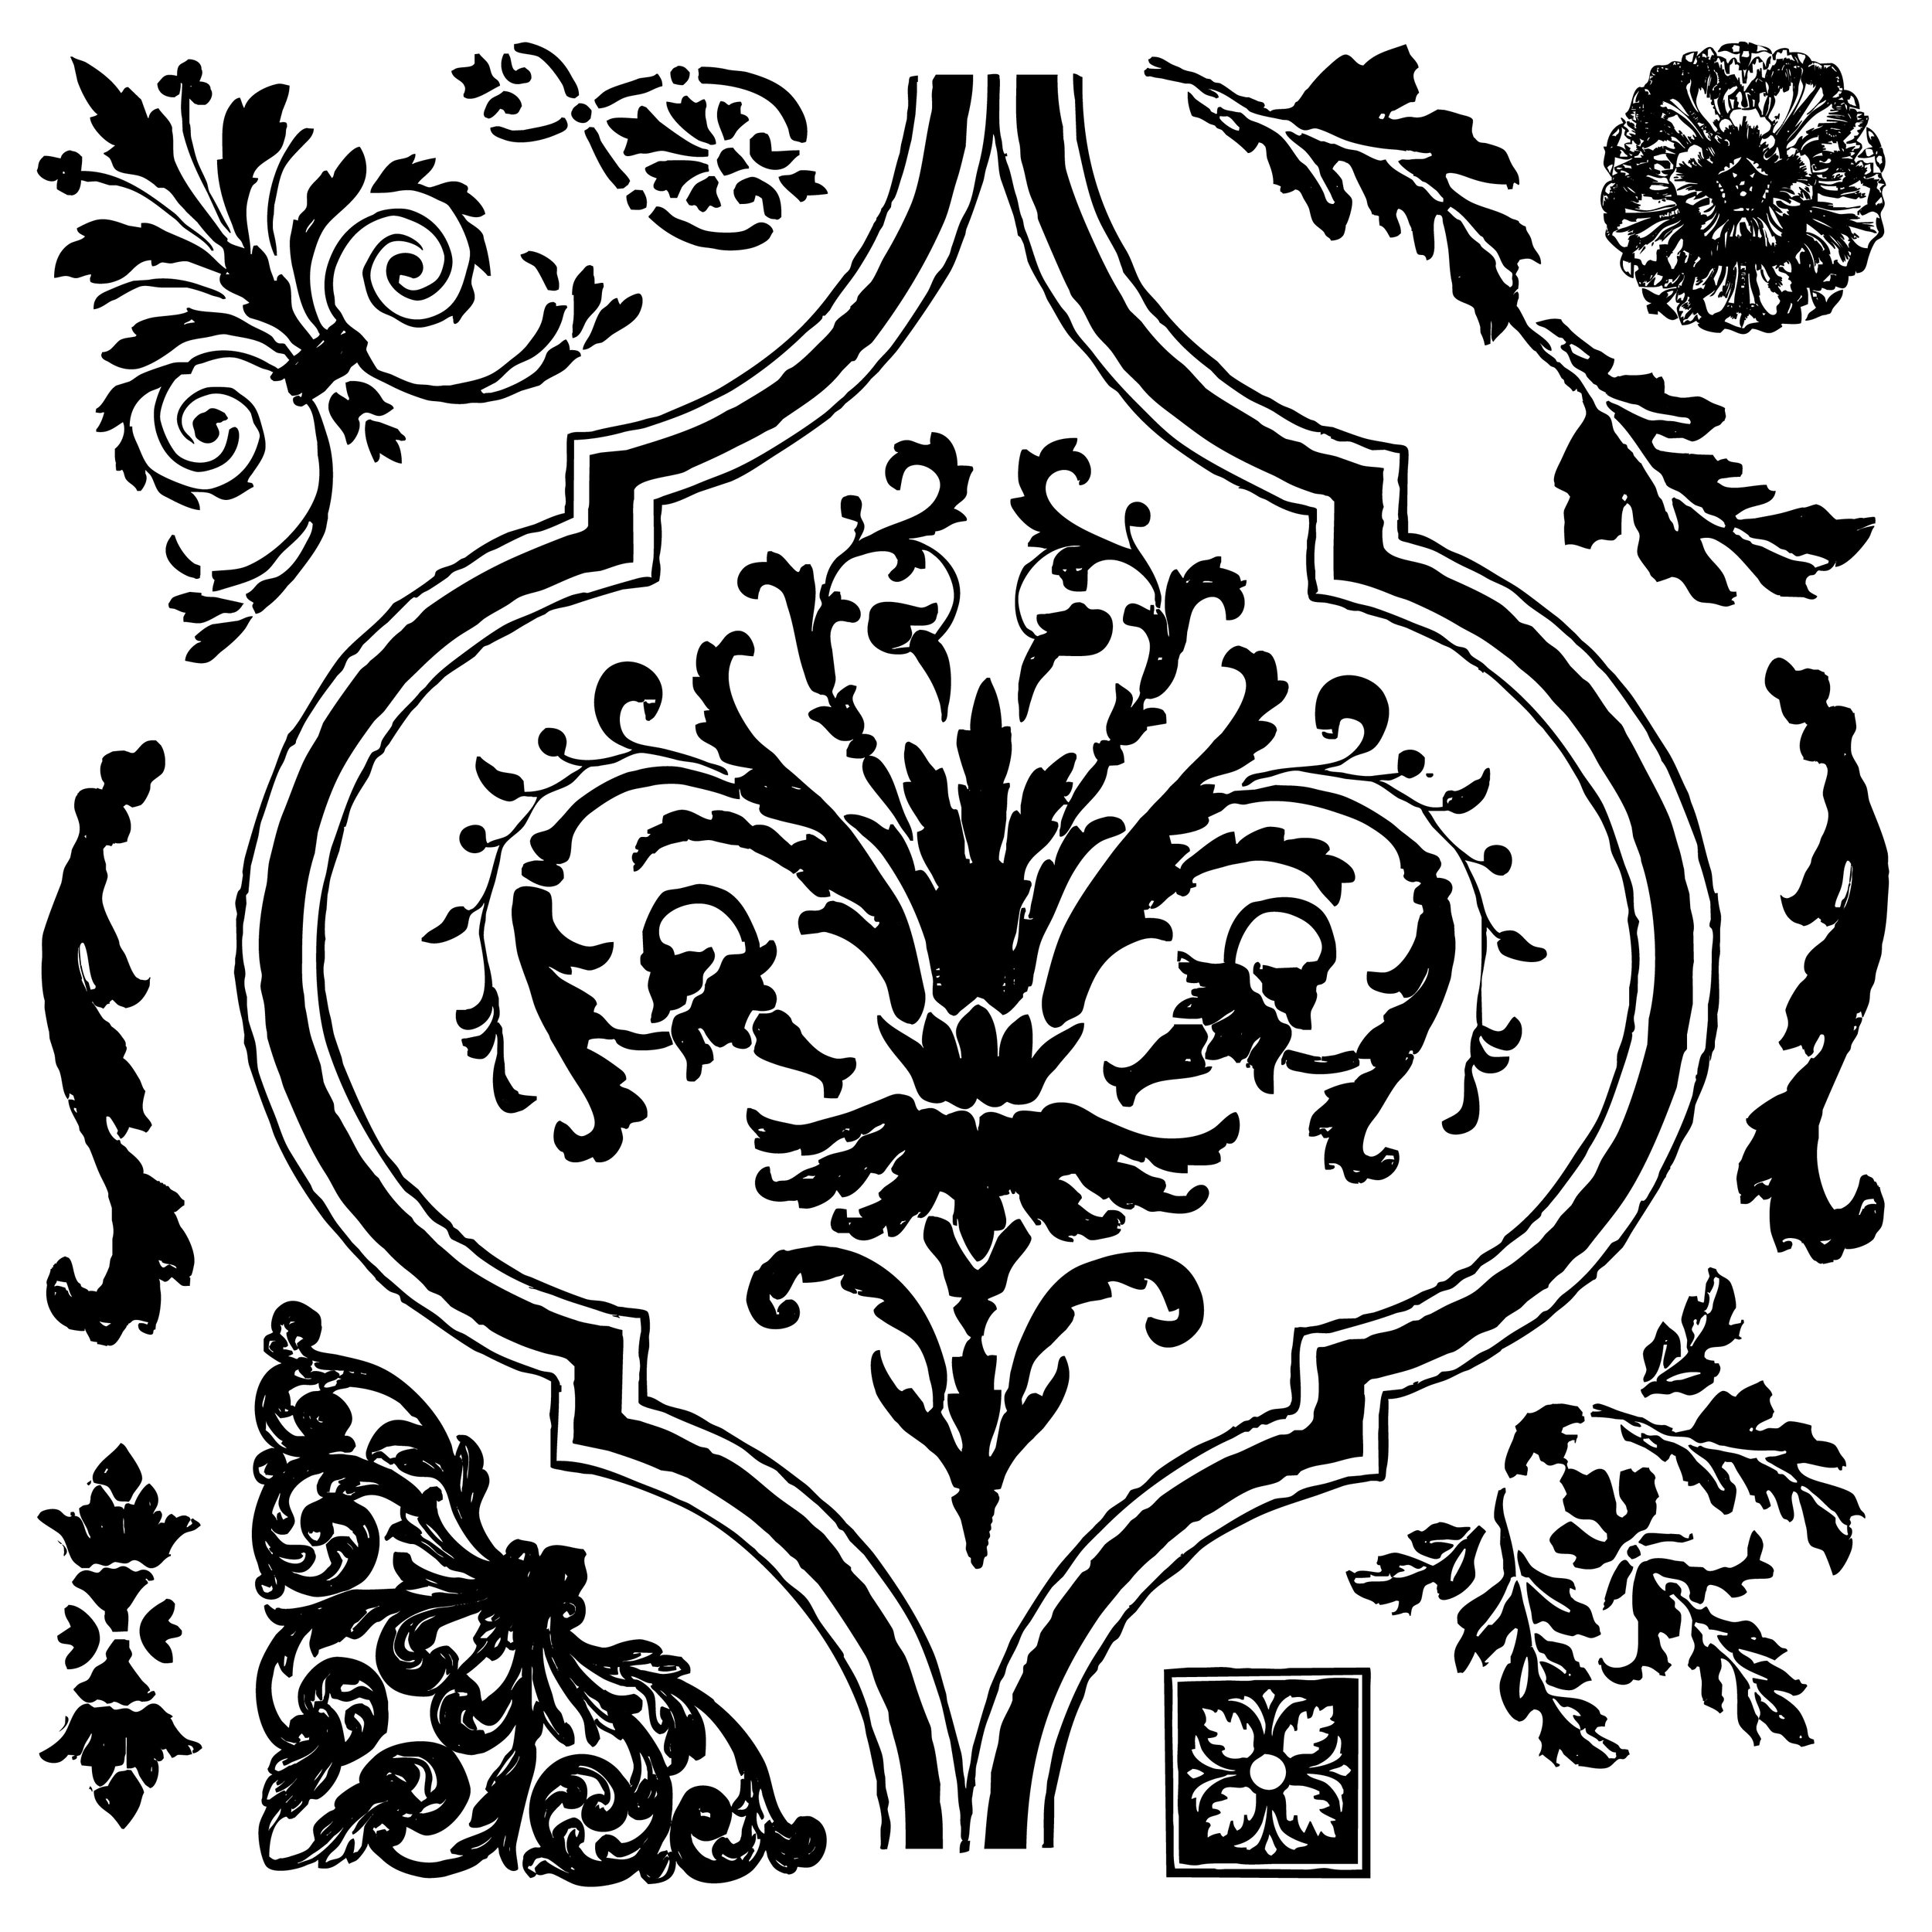 This new set is called Arabesque (815974). This bold design looks amazing on walls and perfect for continual patterns on large surfaces.